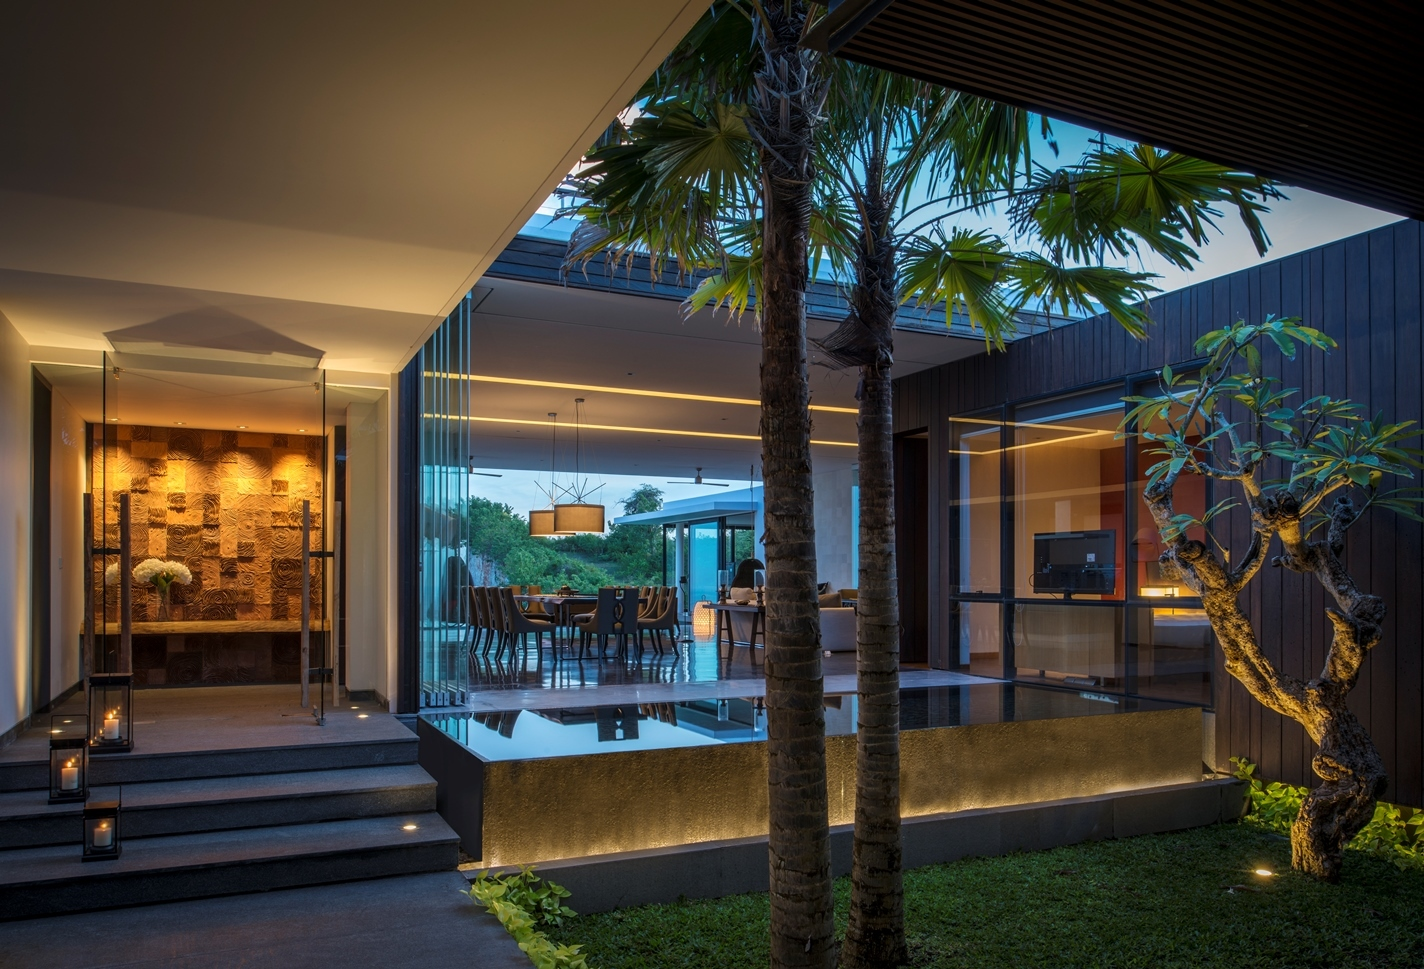 Modern Resort Villa With Balinese Theme IDesignArch Interior Design Arch